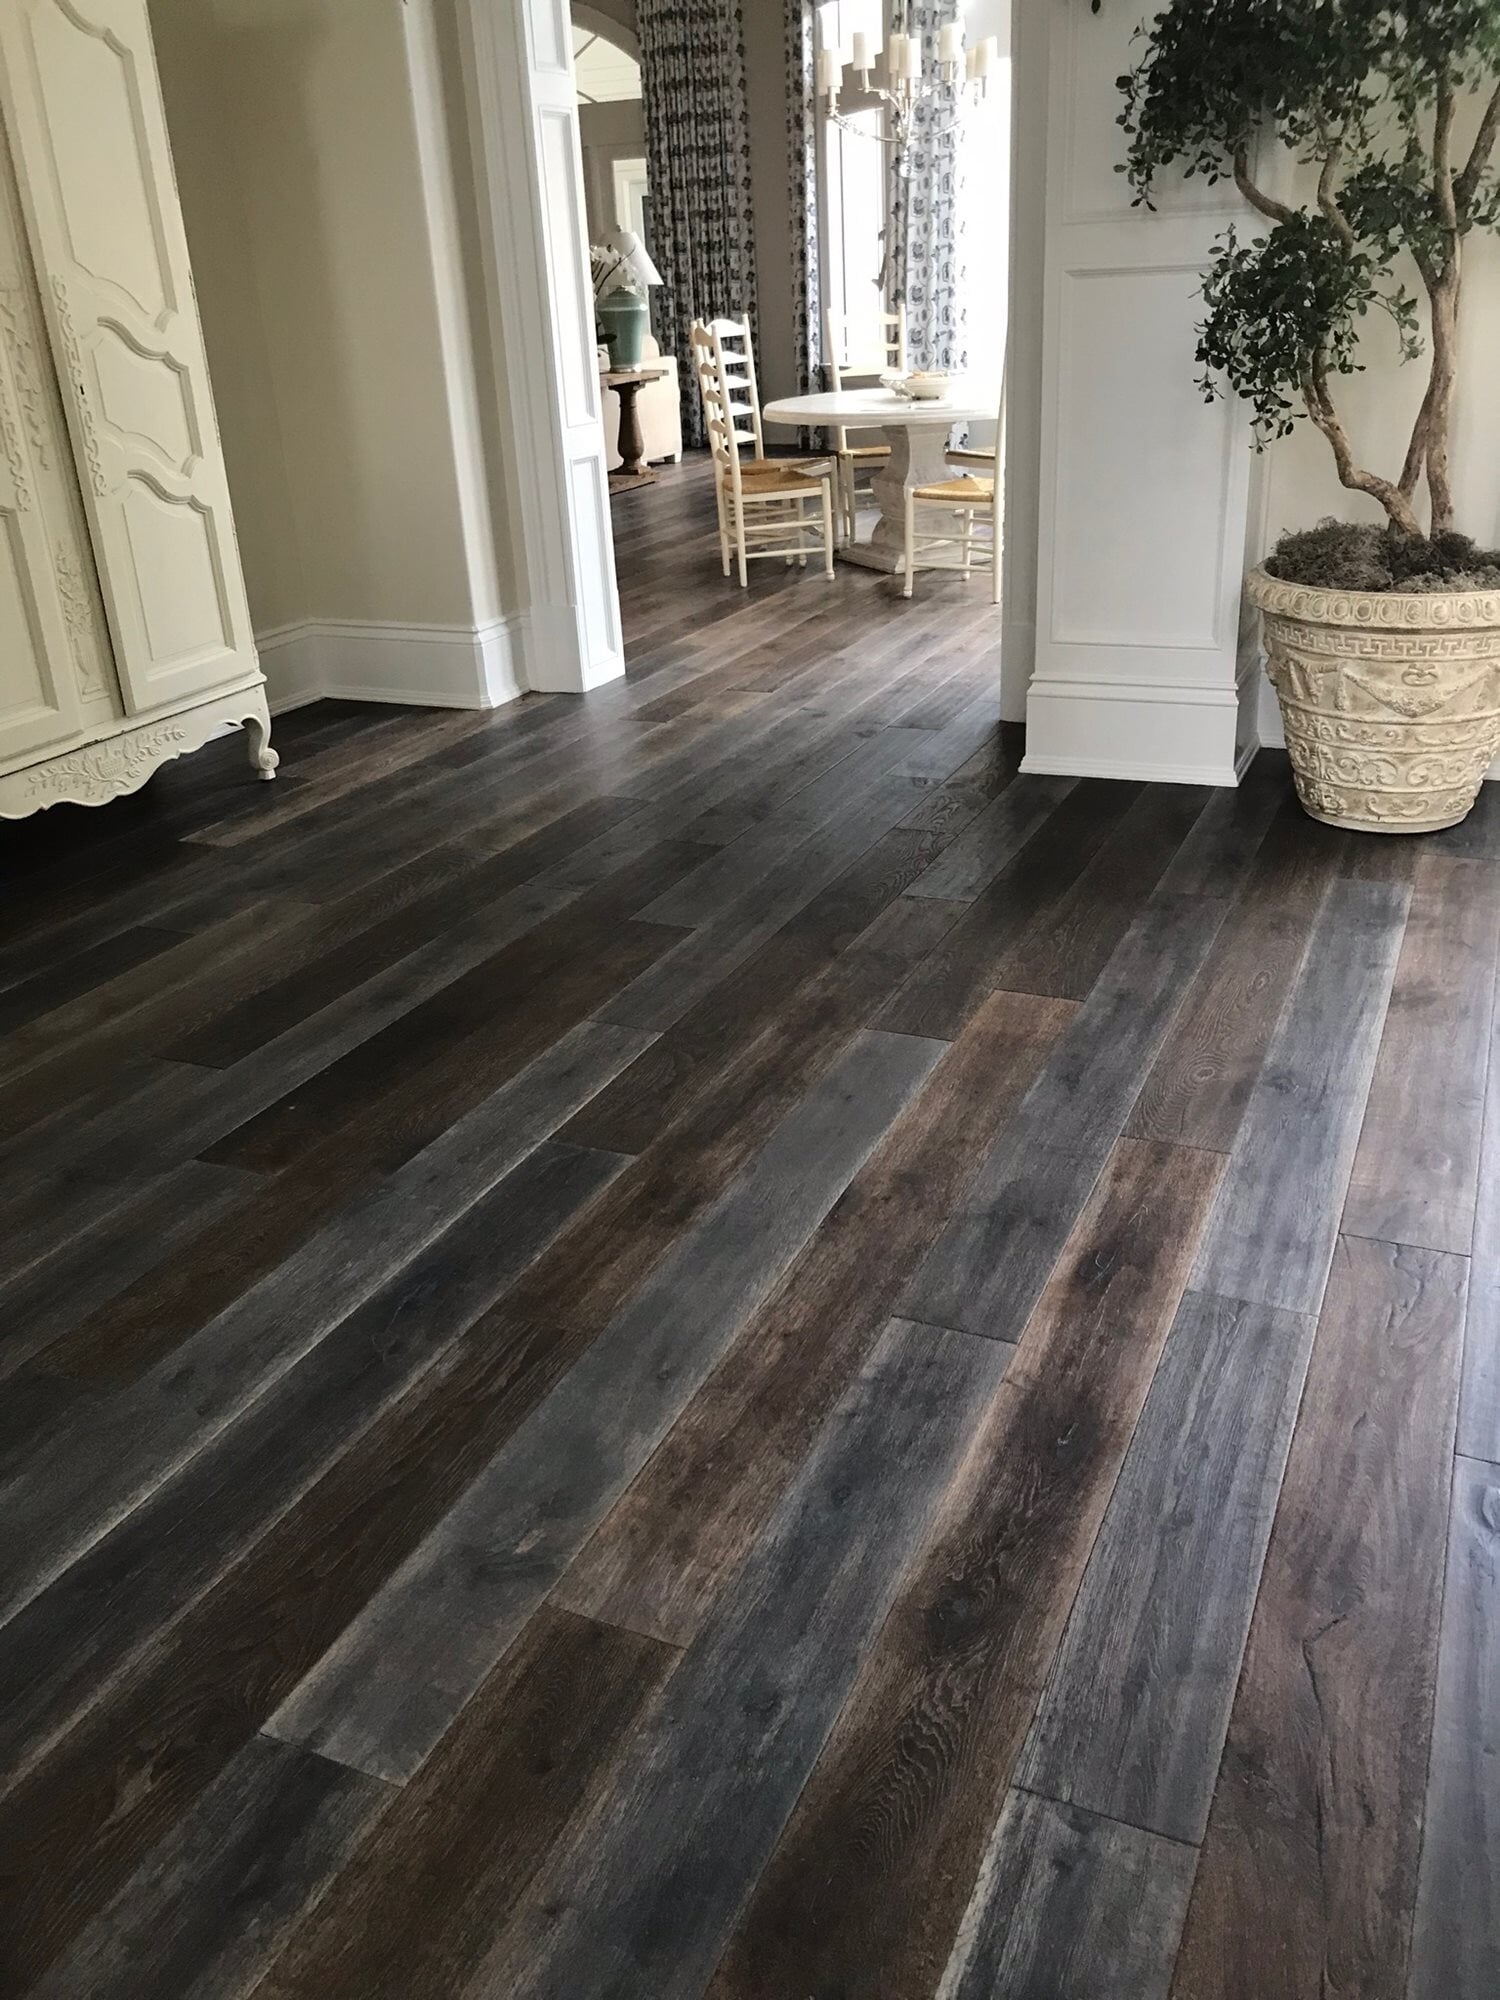 Multicolor wood look flooring in Jupiter, FL from Floors For You Kitchen & Bath